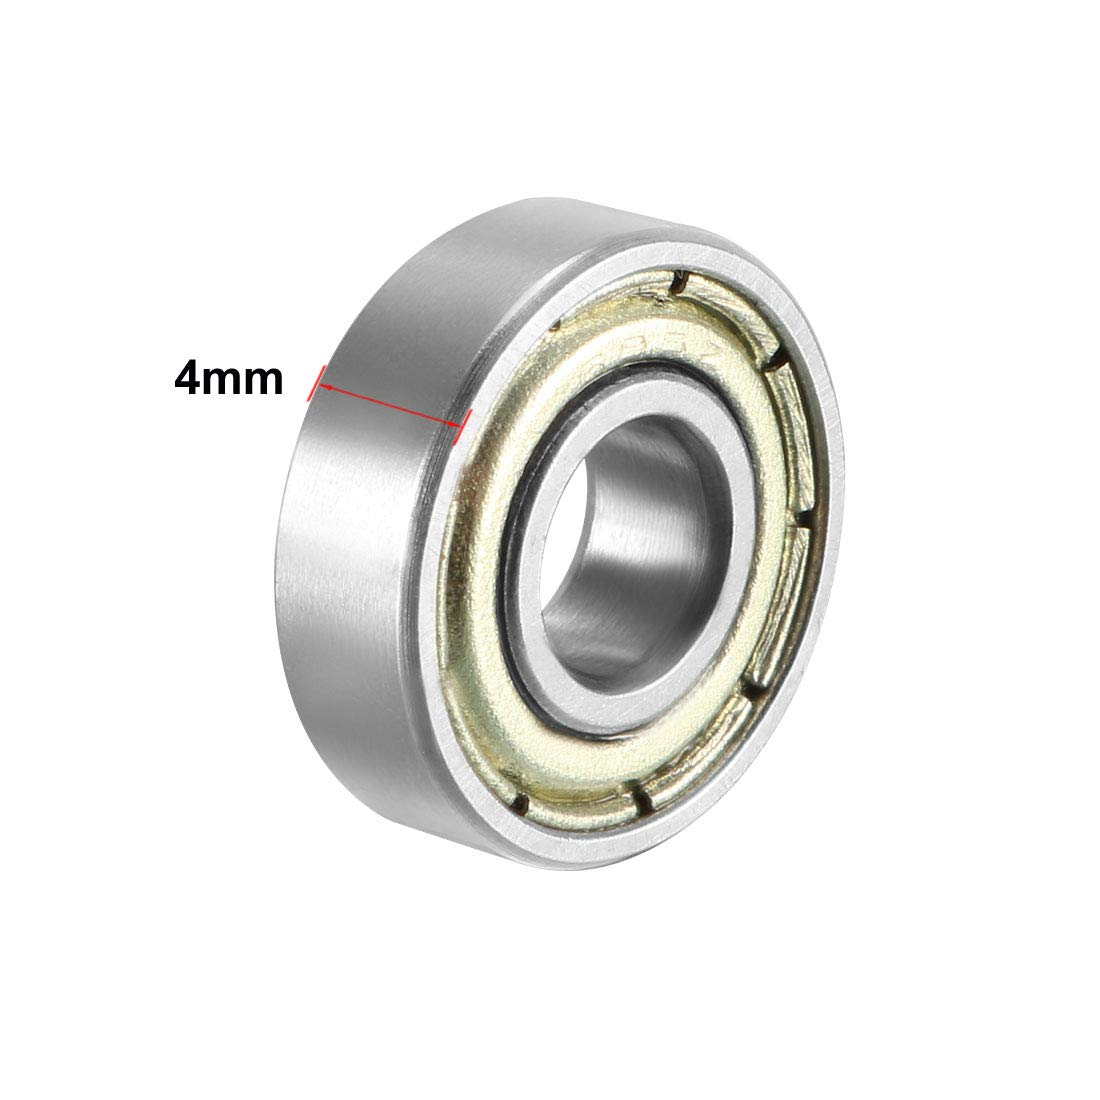 uxcell 695ZZ Deep Groove Ball Bearing Double Shield 695-2Z 1080095 Pack of 4 5mm x 13mm x 4mm Carbon Steel Bearings